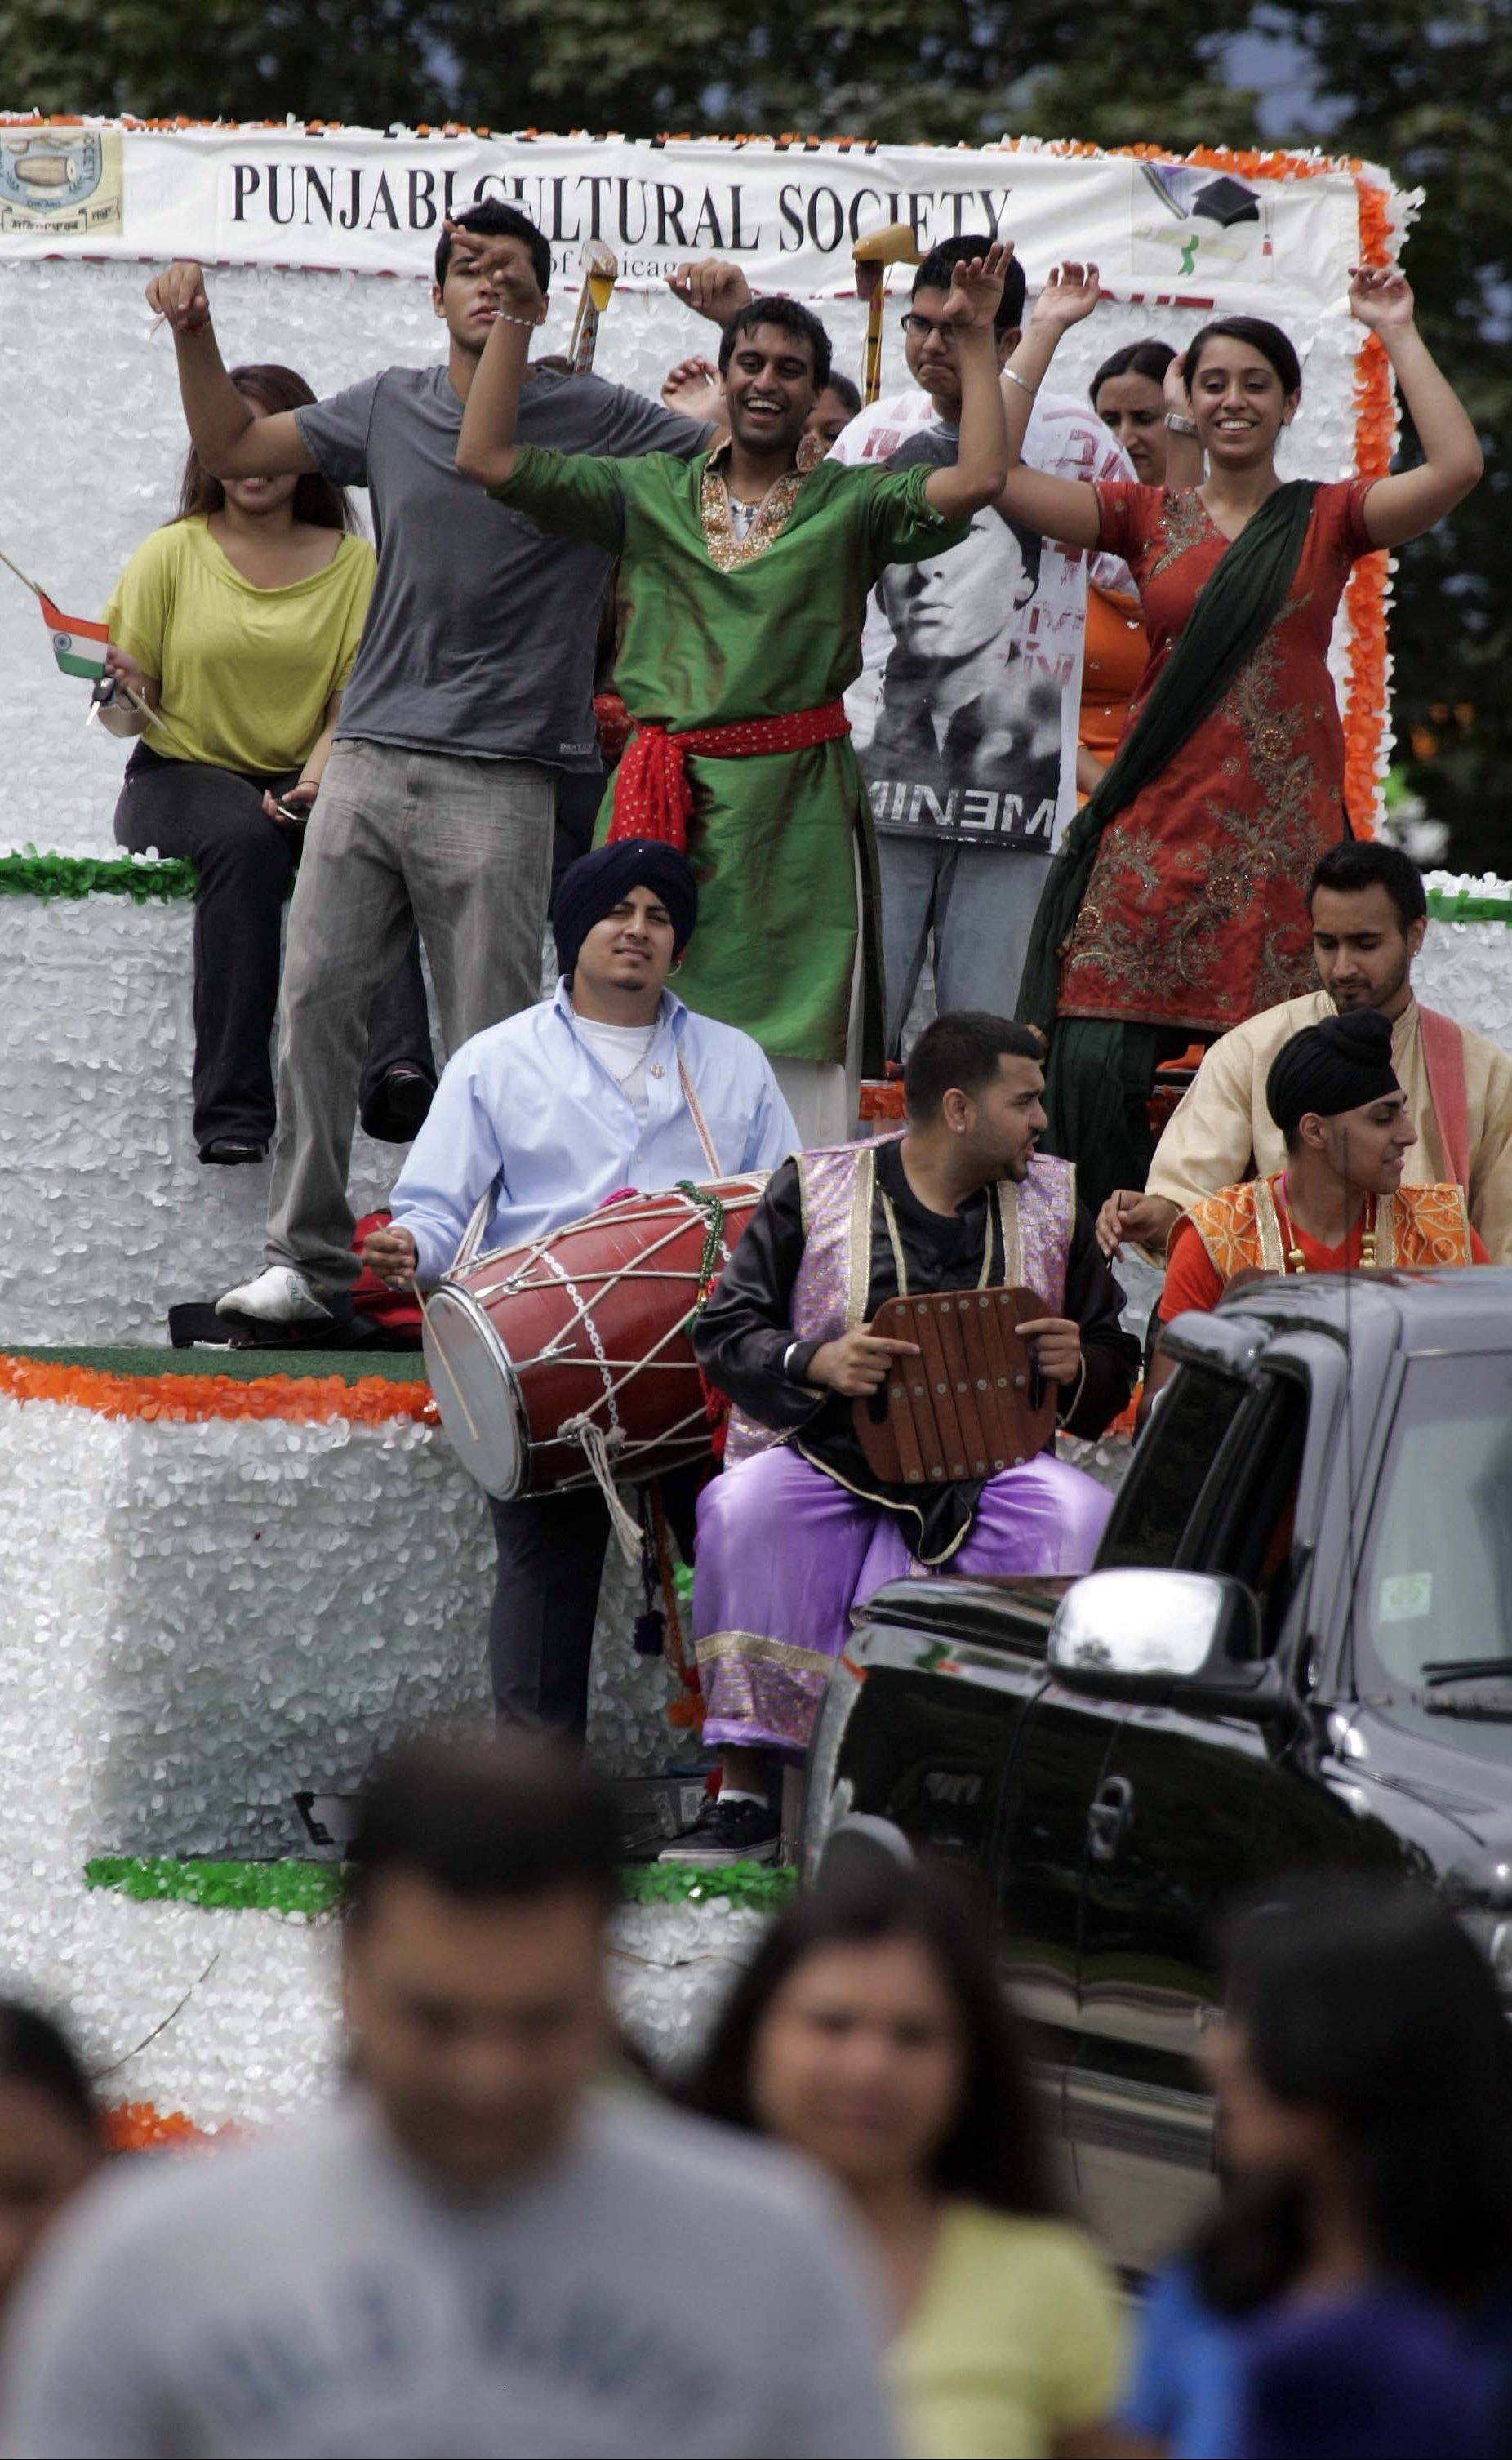 The Punjabi Cultural Society float in the 2011 Indian Independence Day parade, sponsored by the Chicago-based Federation of Indian Associations.